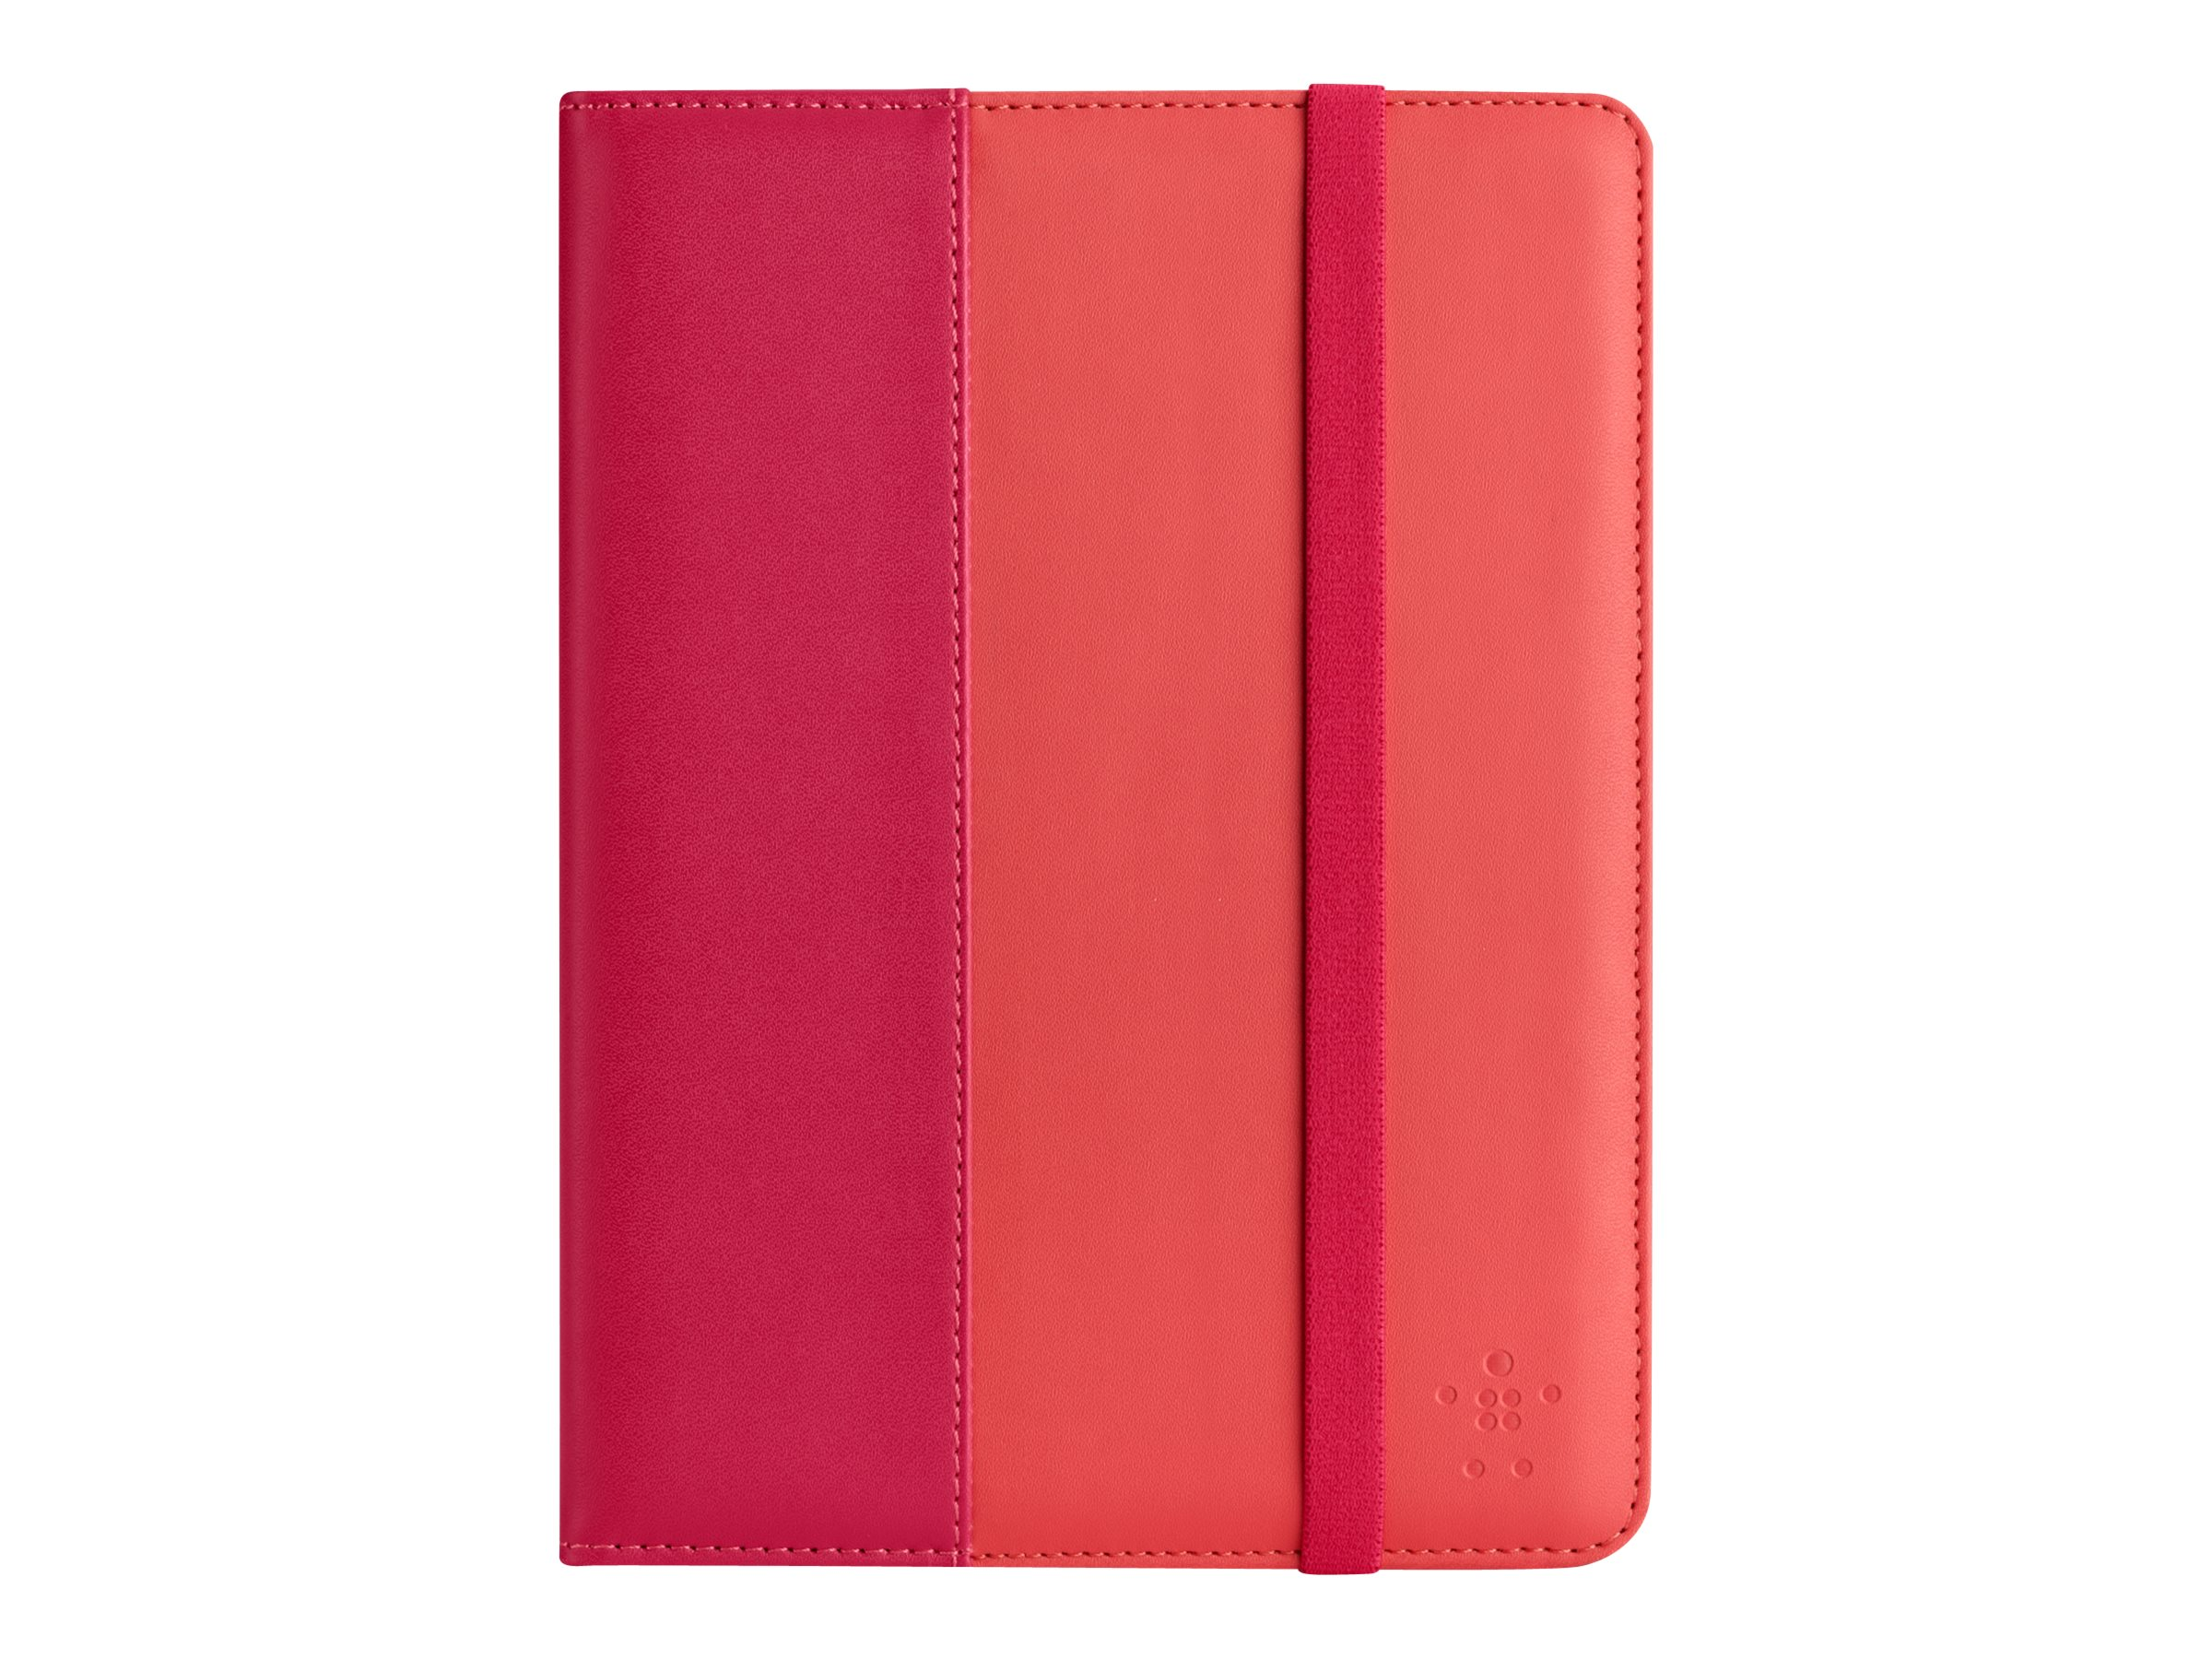 Belkin Classic Tab Cover for Kindle Fire HD 7, Pink